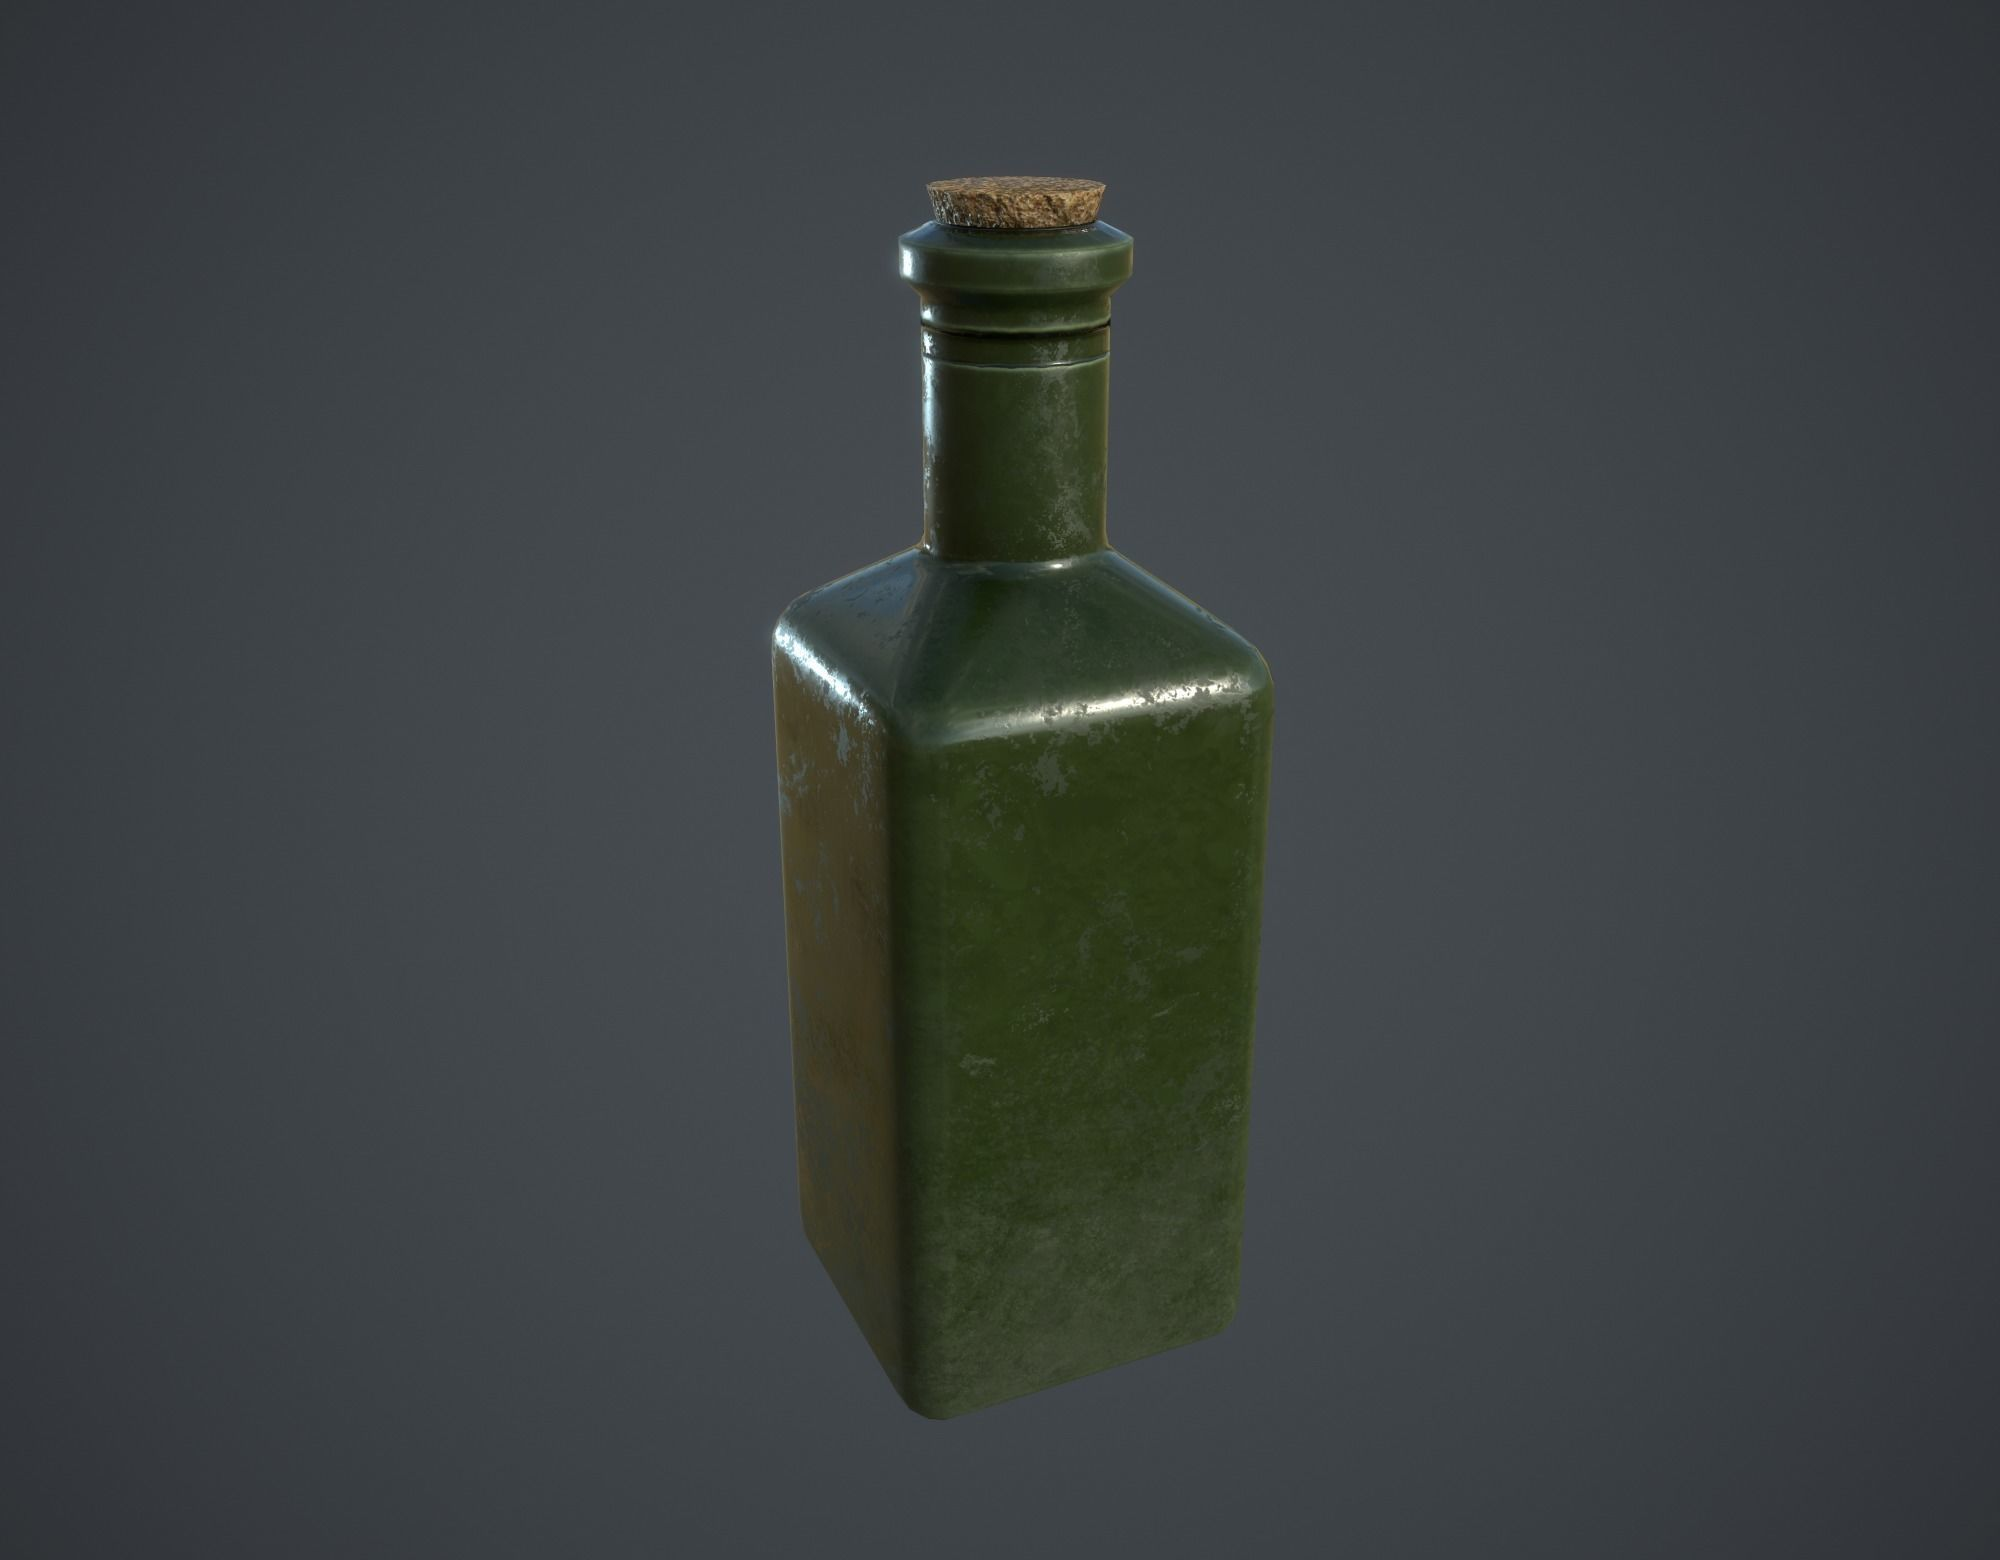 Small Potion Bottle